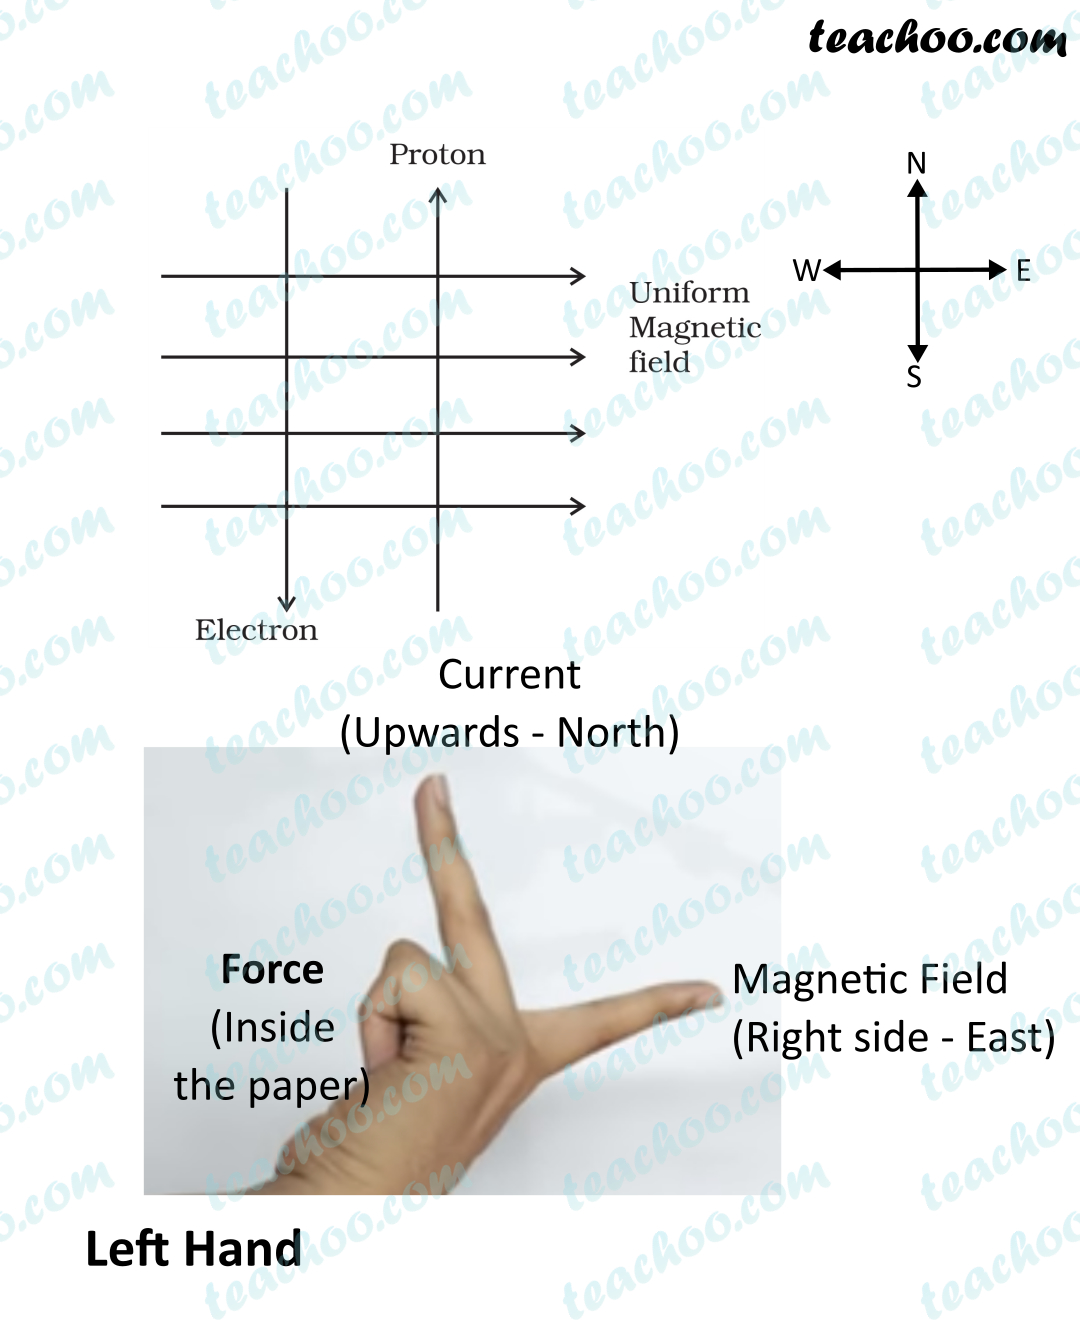 fig-13.3-ncert-exemplar-(answer)-magnetic-effects-class-10---teachoo.jpg